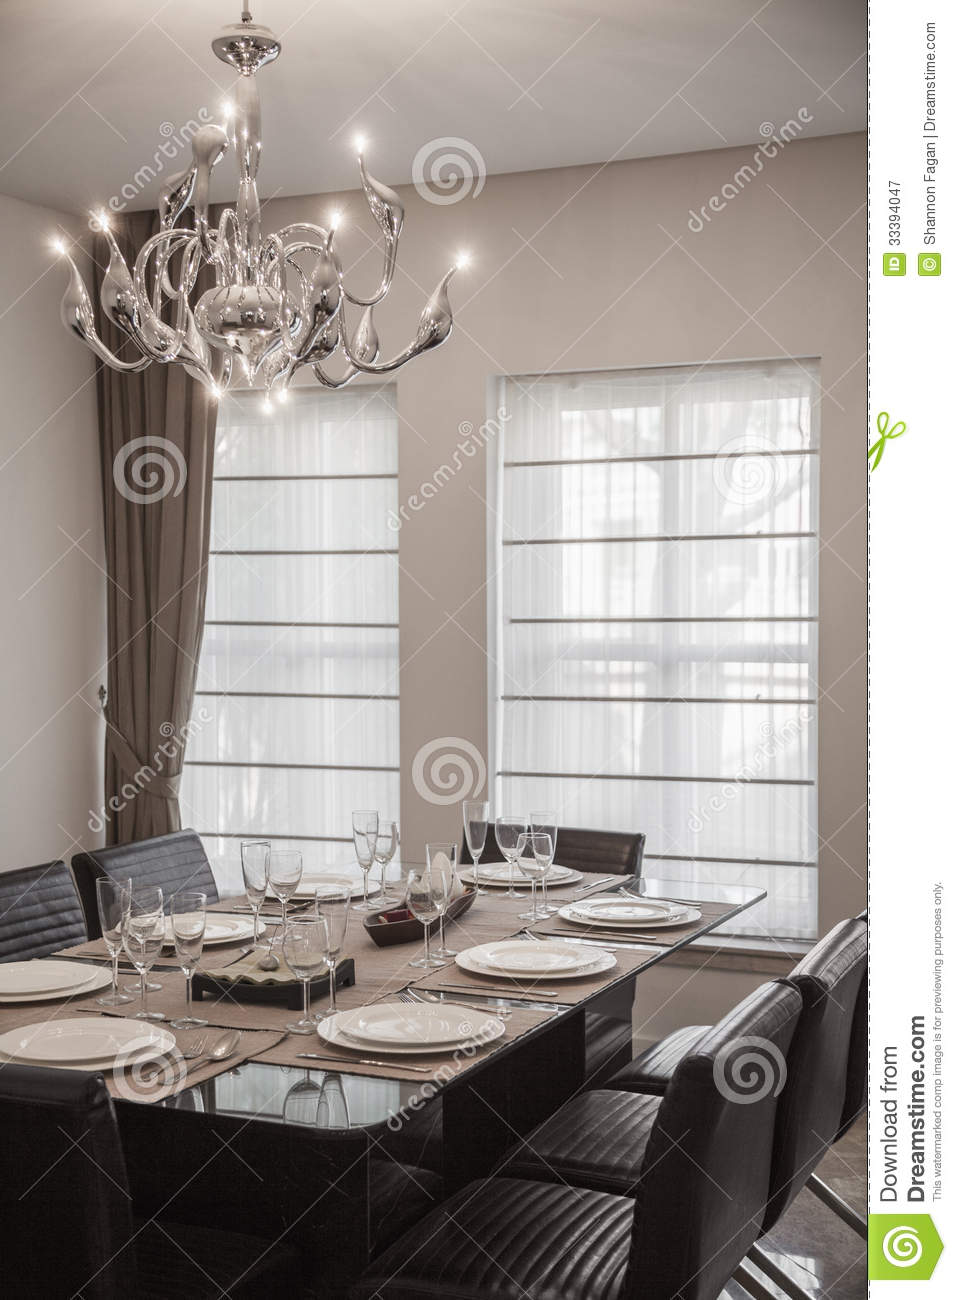 lustre salle a manger cuivre lustre en cristal salle manger de cuivre bougie lustre salon. Black Bedroom Furniture Sets. Home Design Ideas